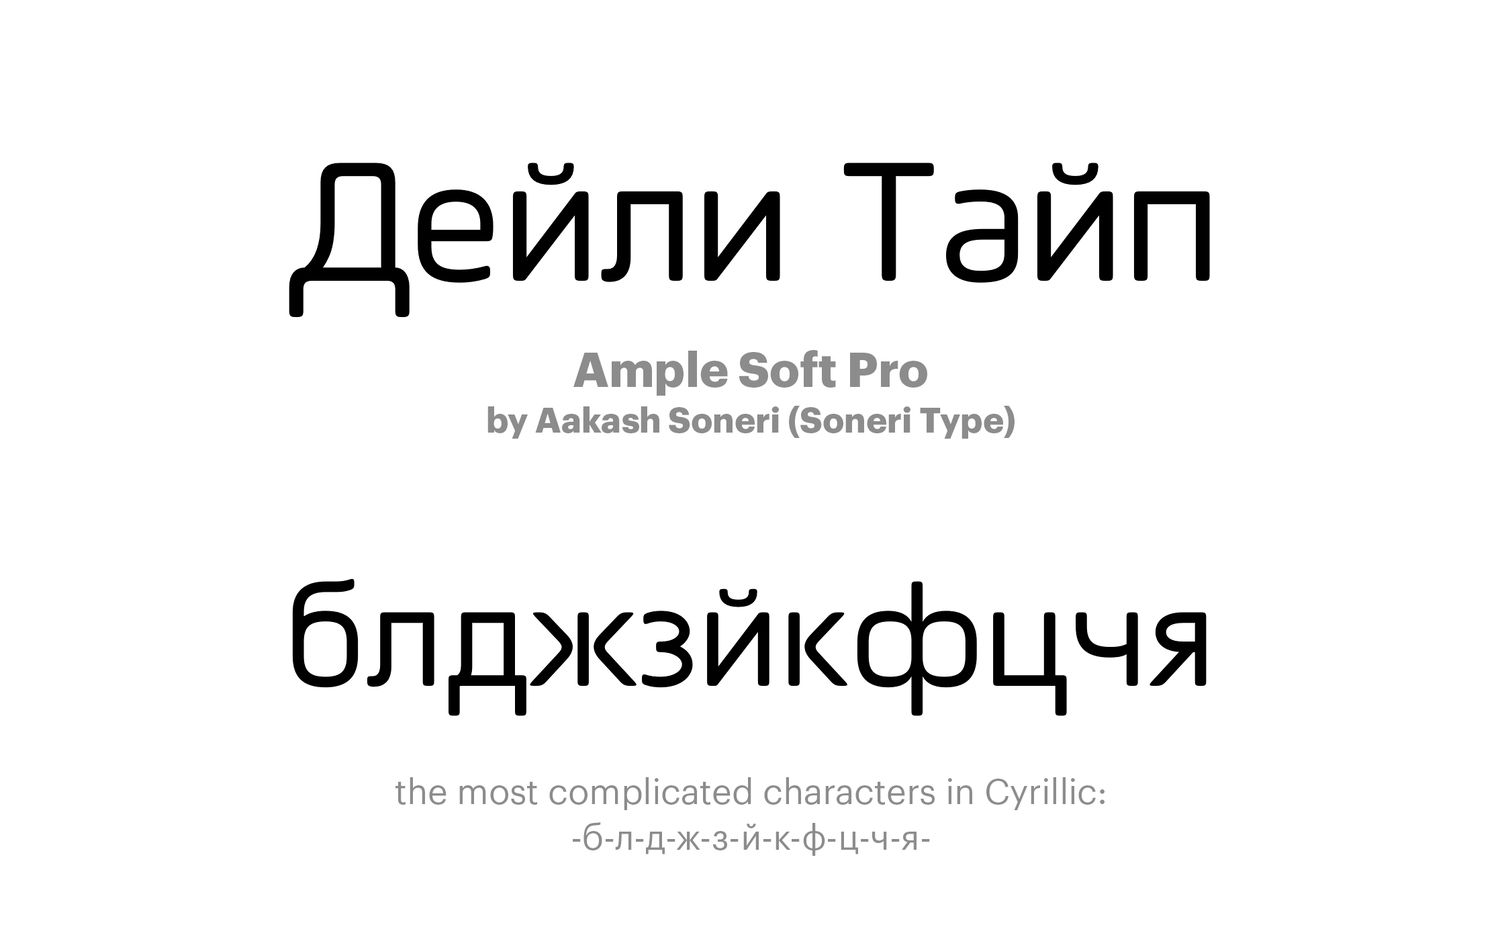 Ample-Soft-Pro-by-Aakash-Soneri-(Soneri-Type)